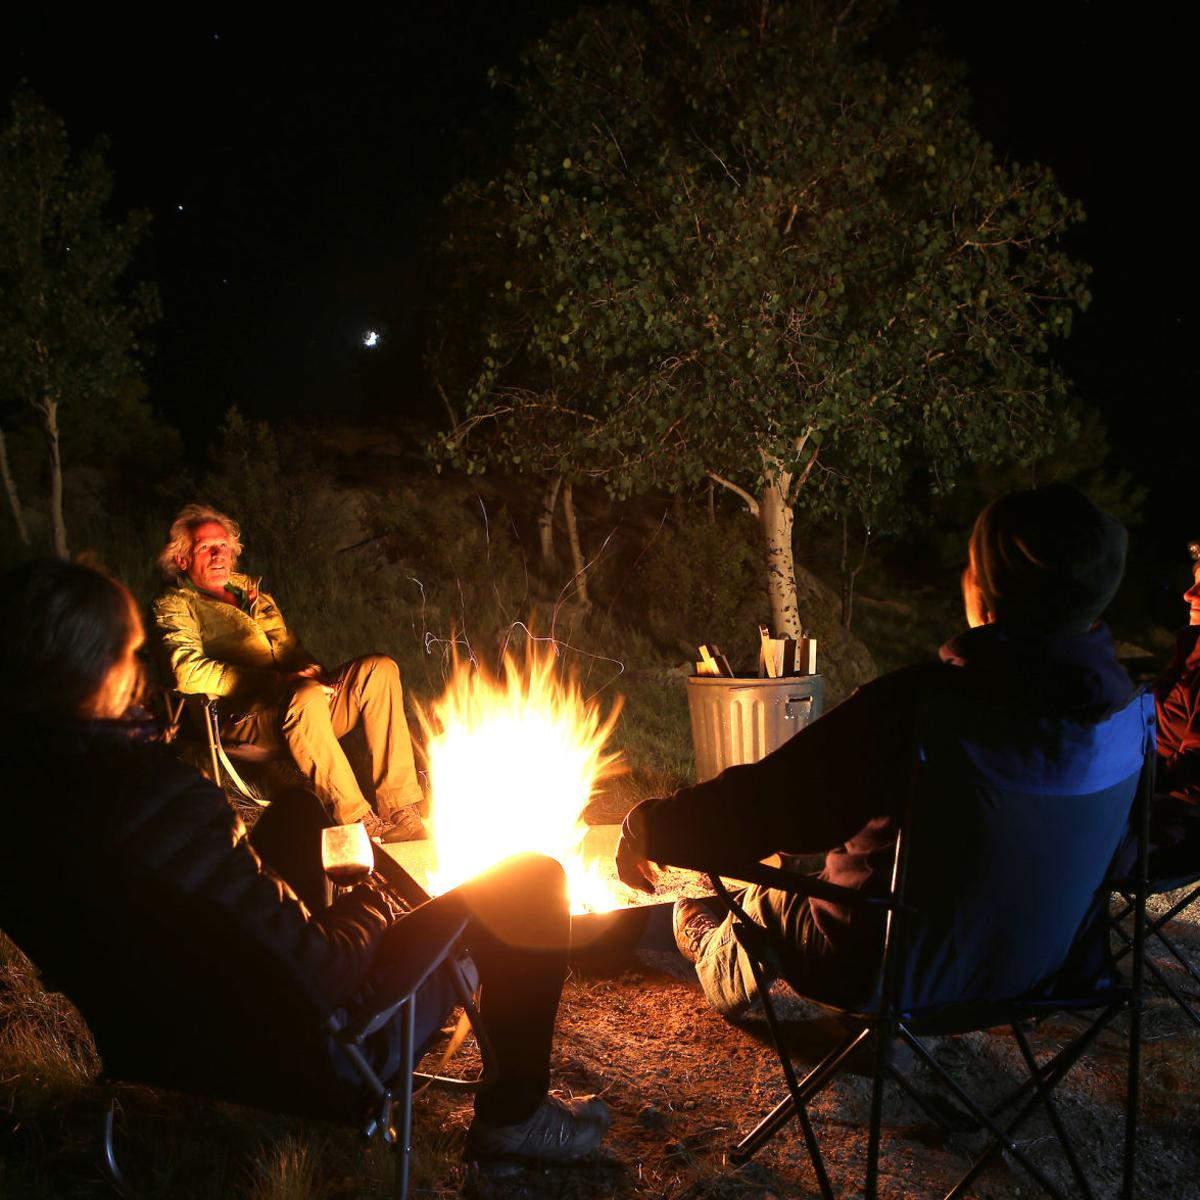 Glamping up your campfire cuisine | Lifestyle | gazette com